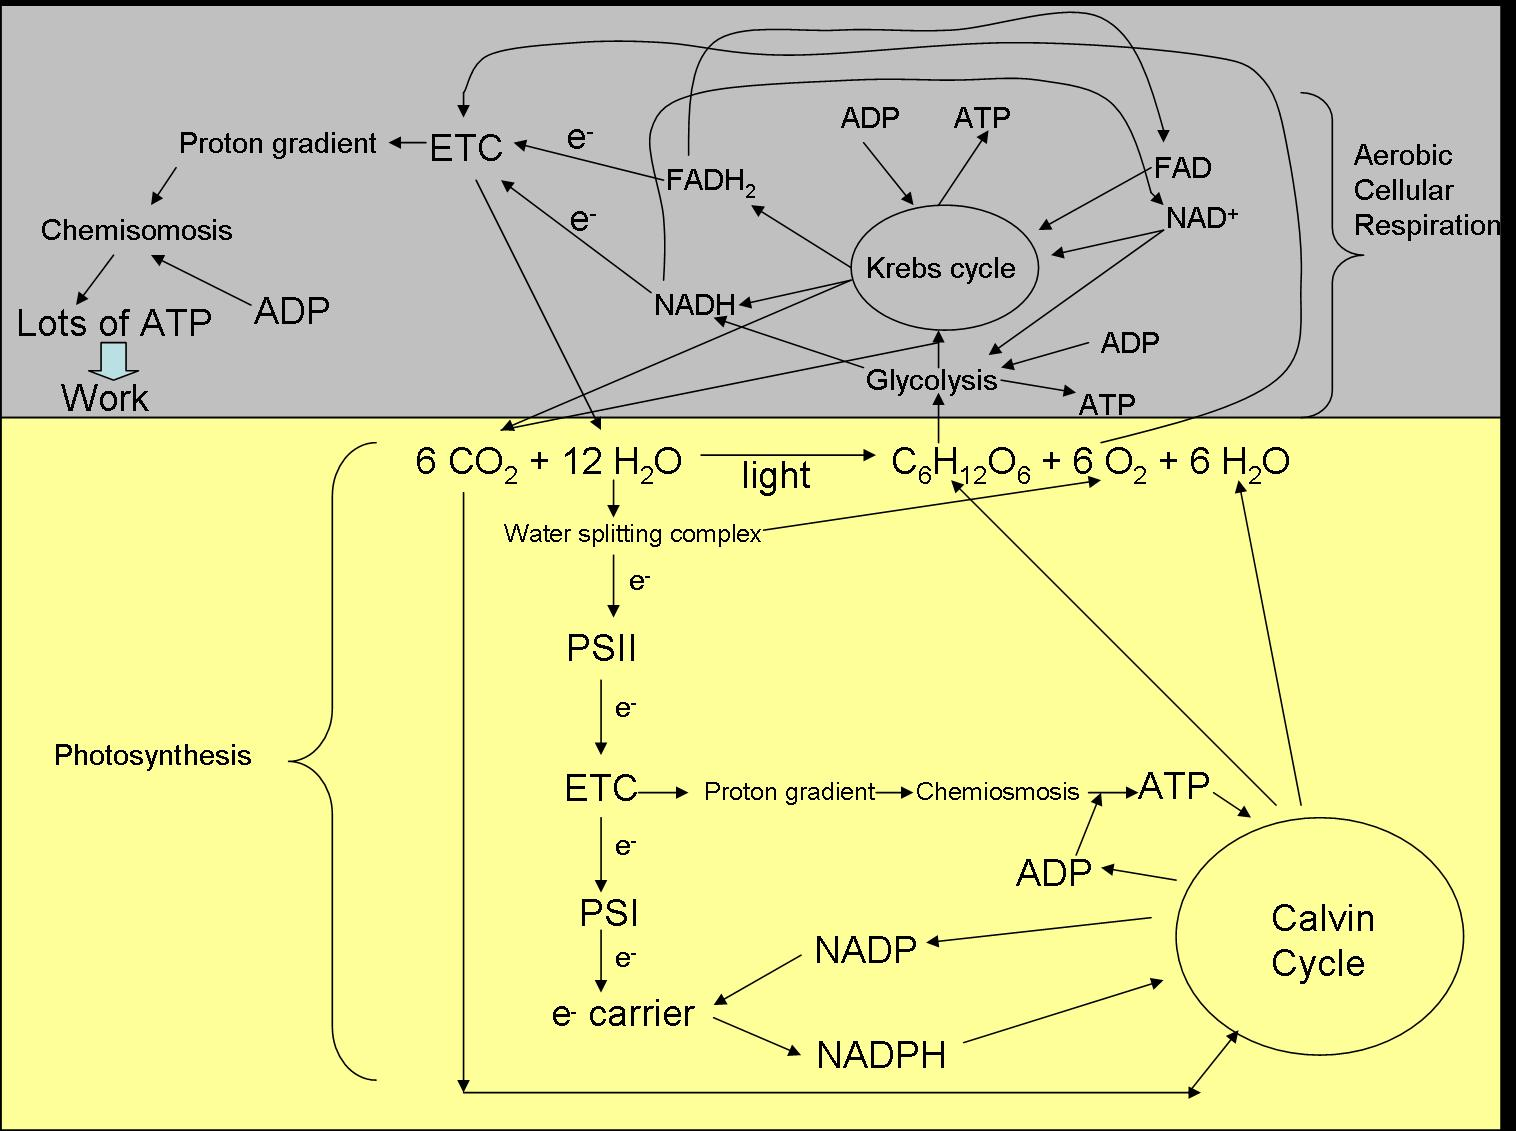 Cellular Respiration And Photosynthesis Diagram